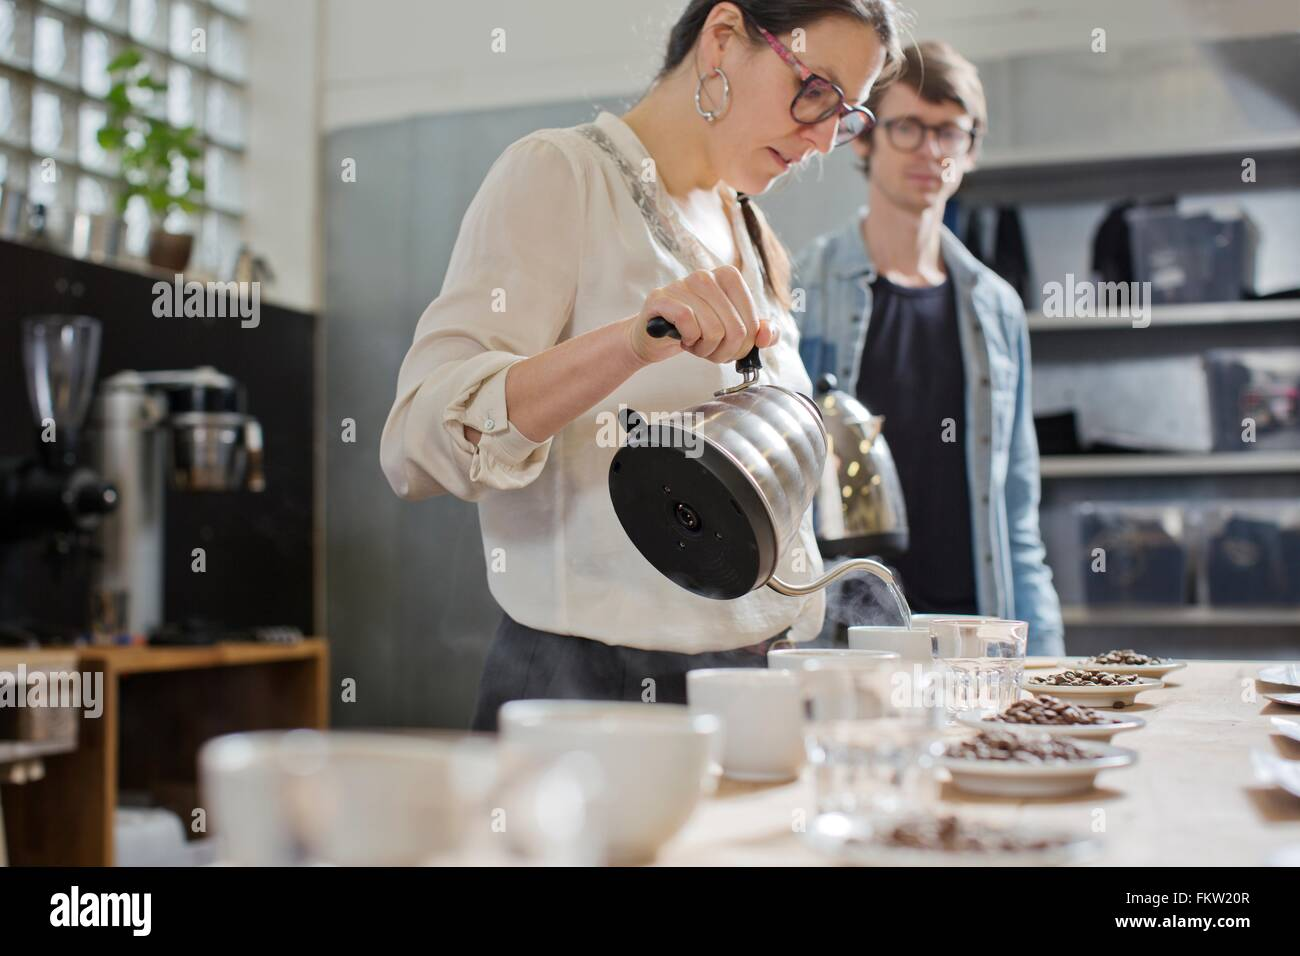 C fee taster pouring hot water into cup   c fee - Stock Image